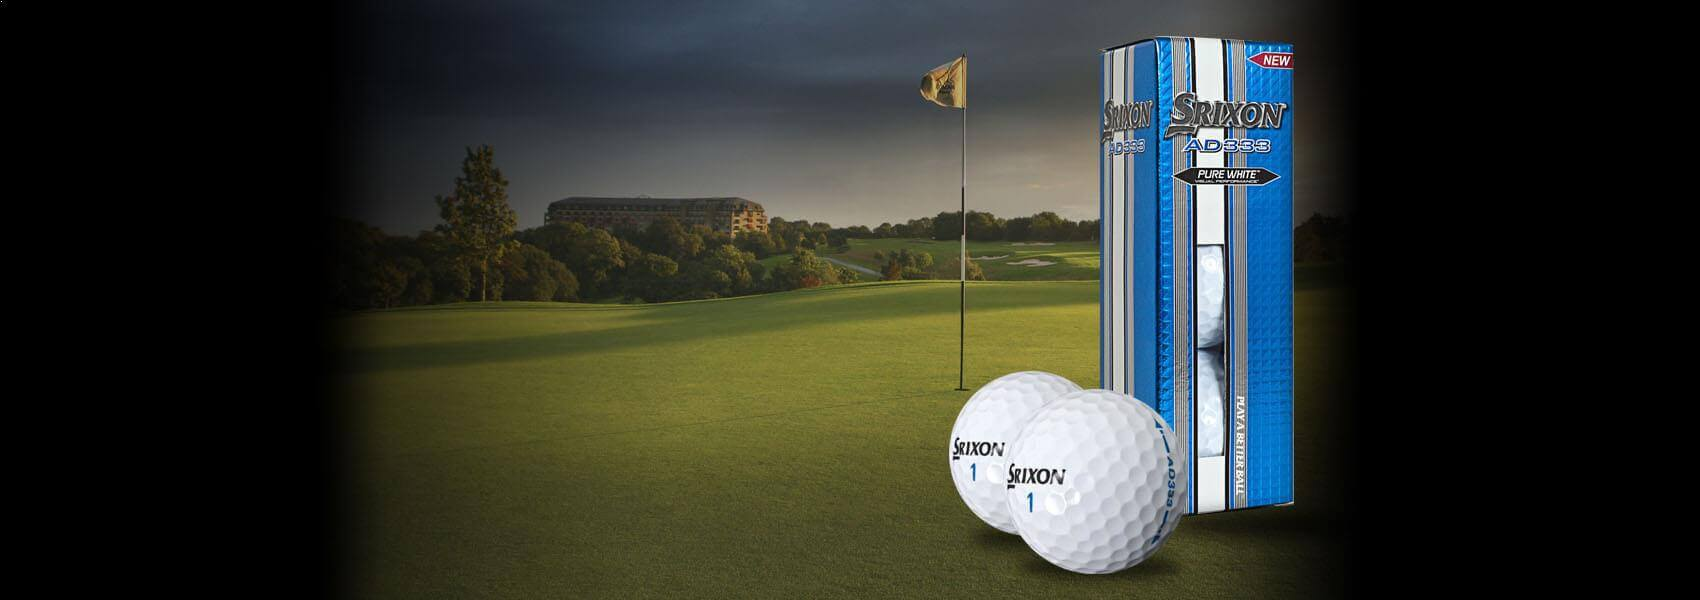 5 free rounds of golf, a free golf lesson, 5 greenfree 2 for 1 vouchers, three complimentary golf balls when you join by driect debt